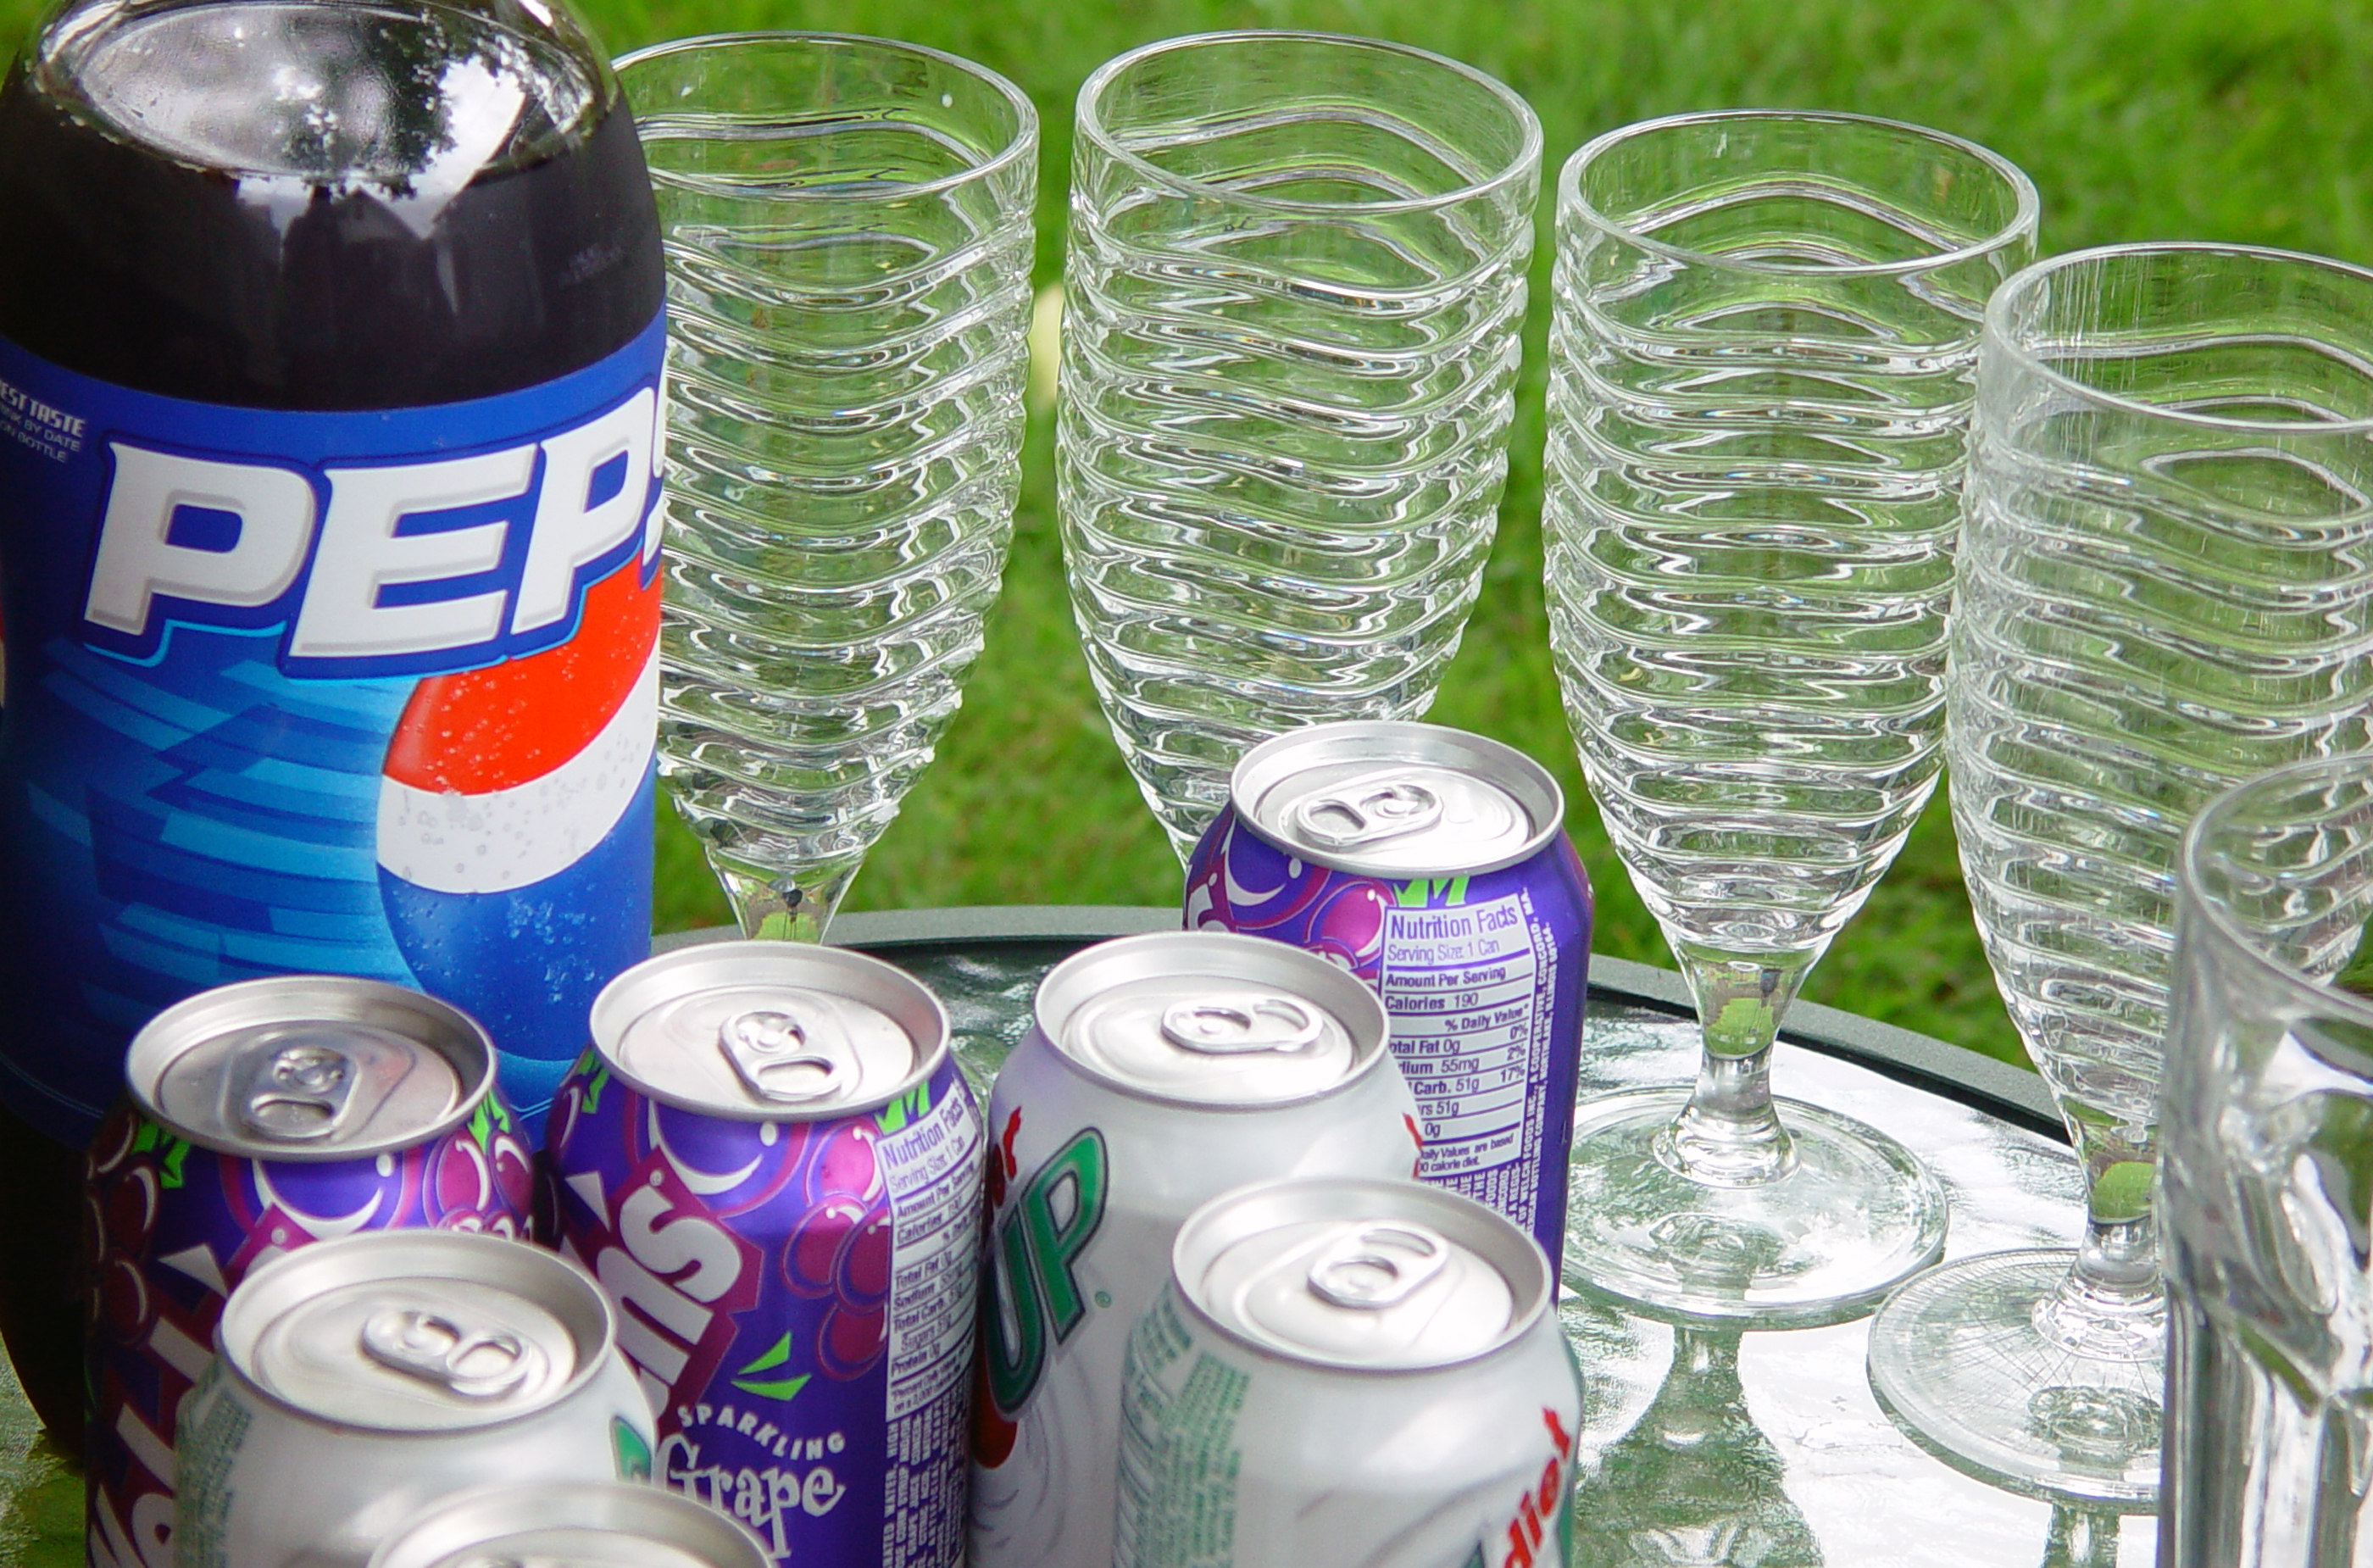 Pepsi Will Not Develop Flavor Enhancers With Fetal Cells Christian